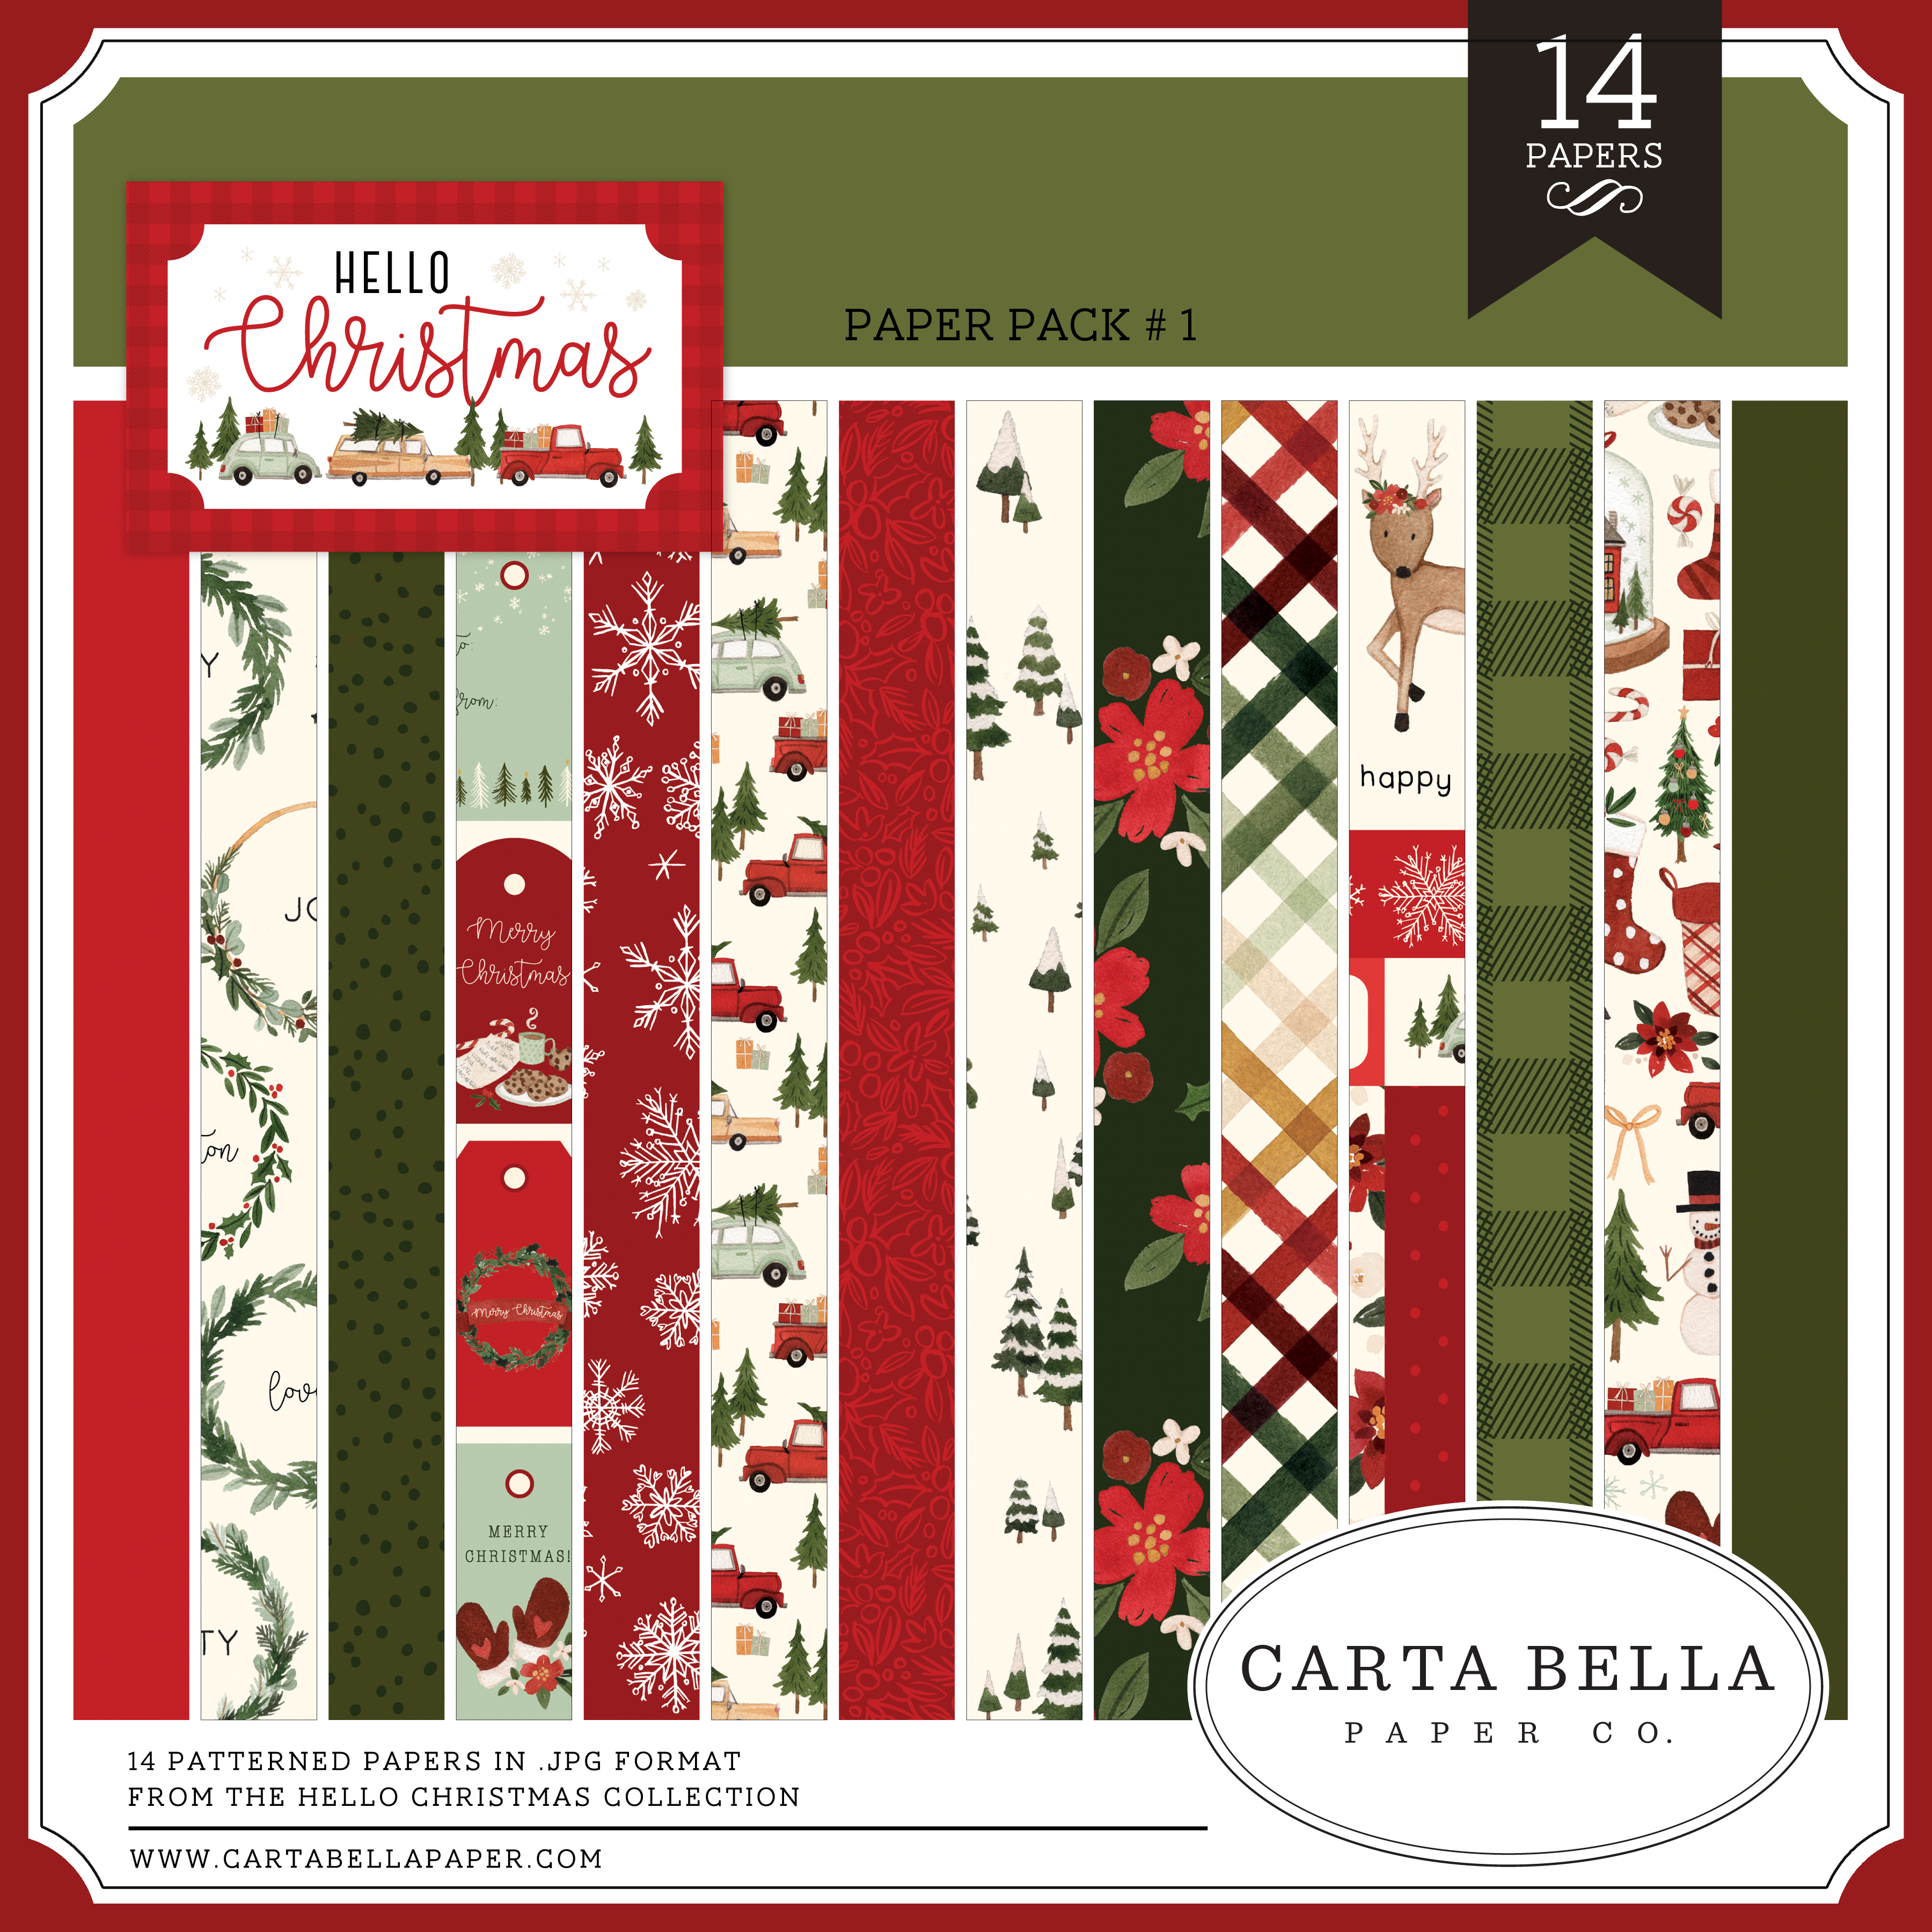 Hello Christmas Paper Pack #1